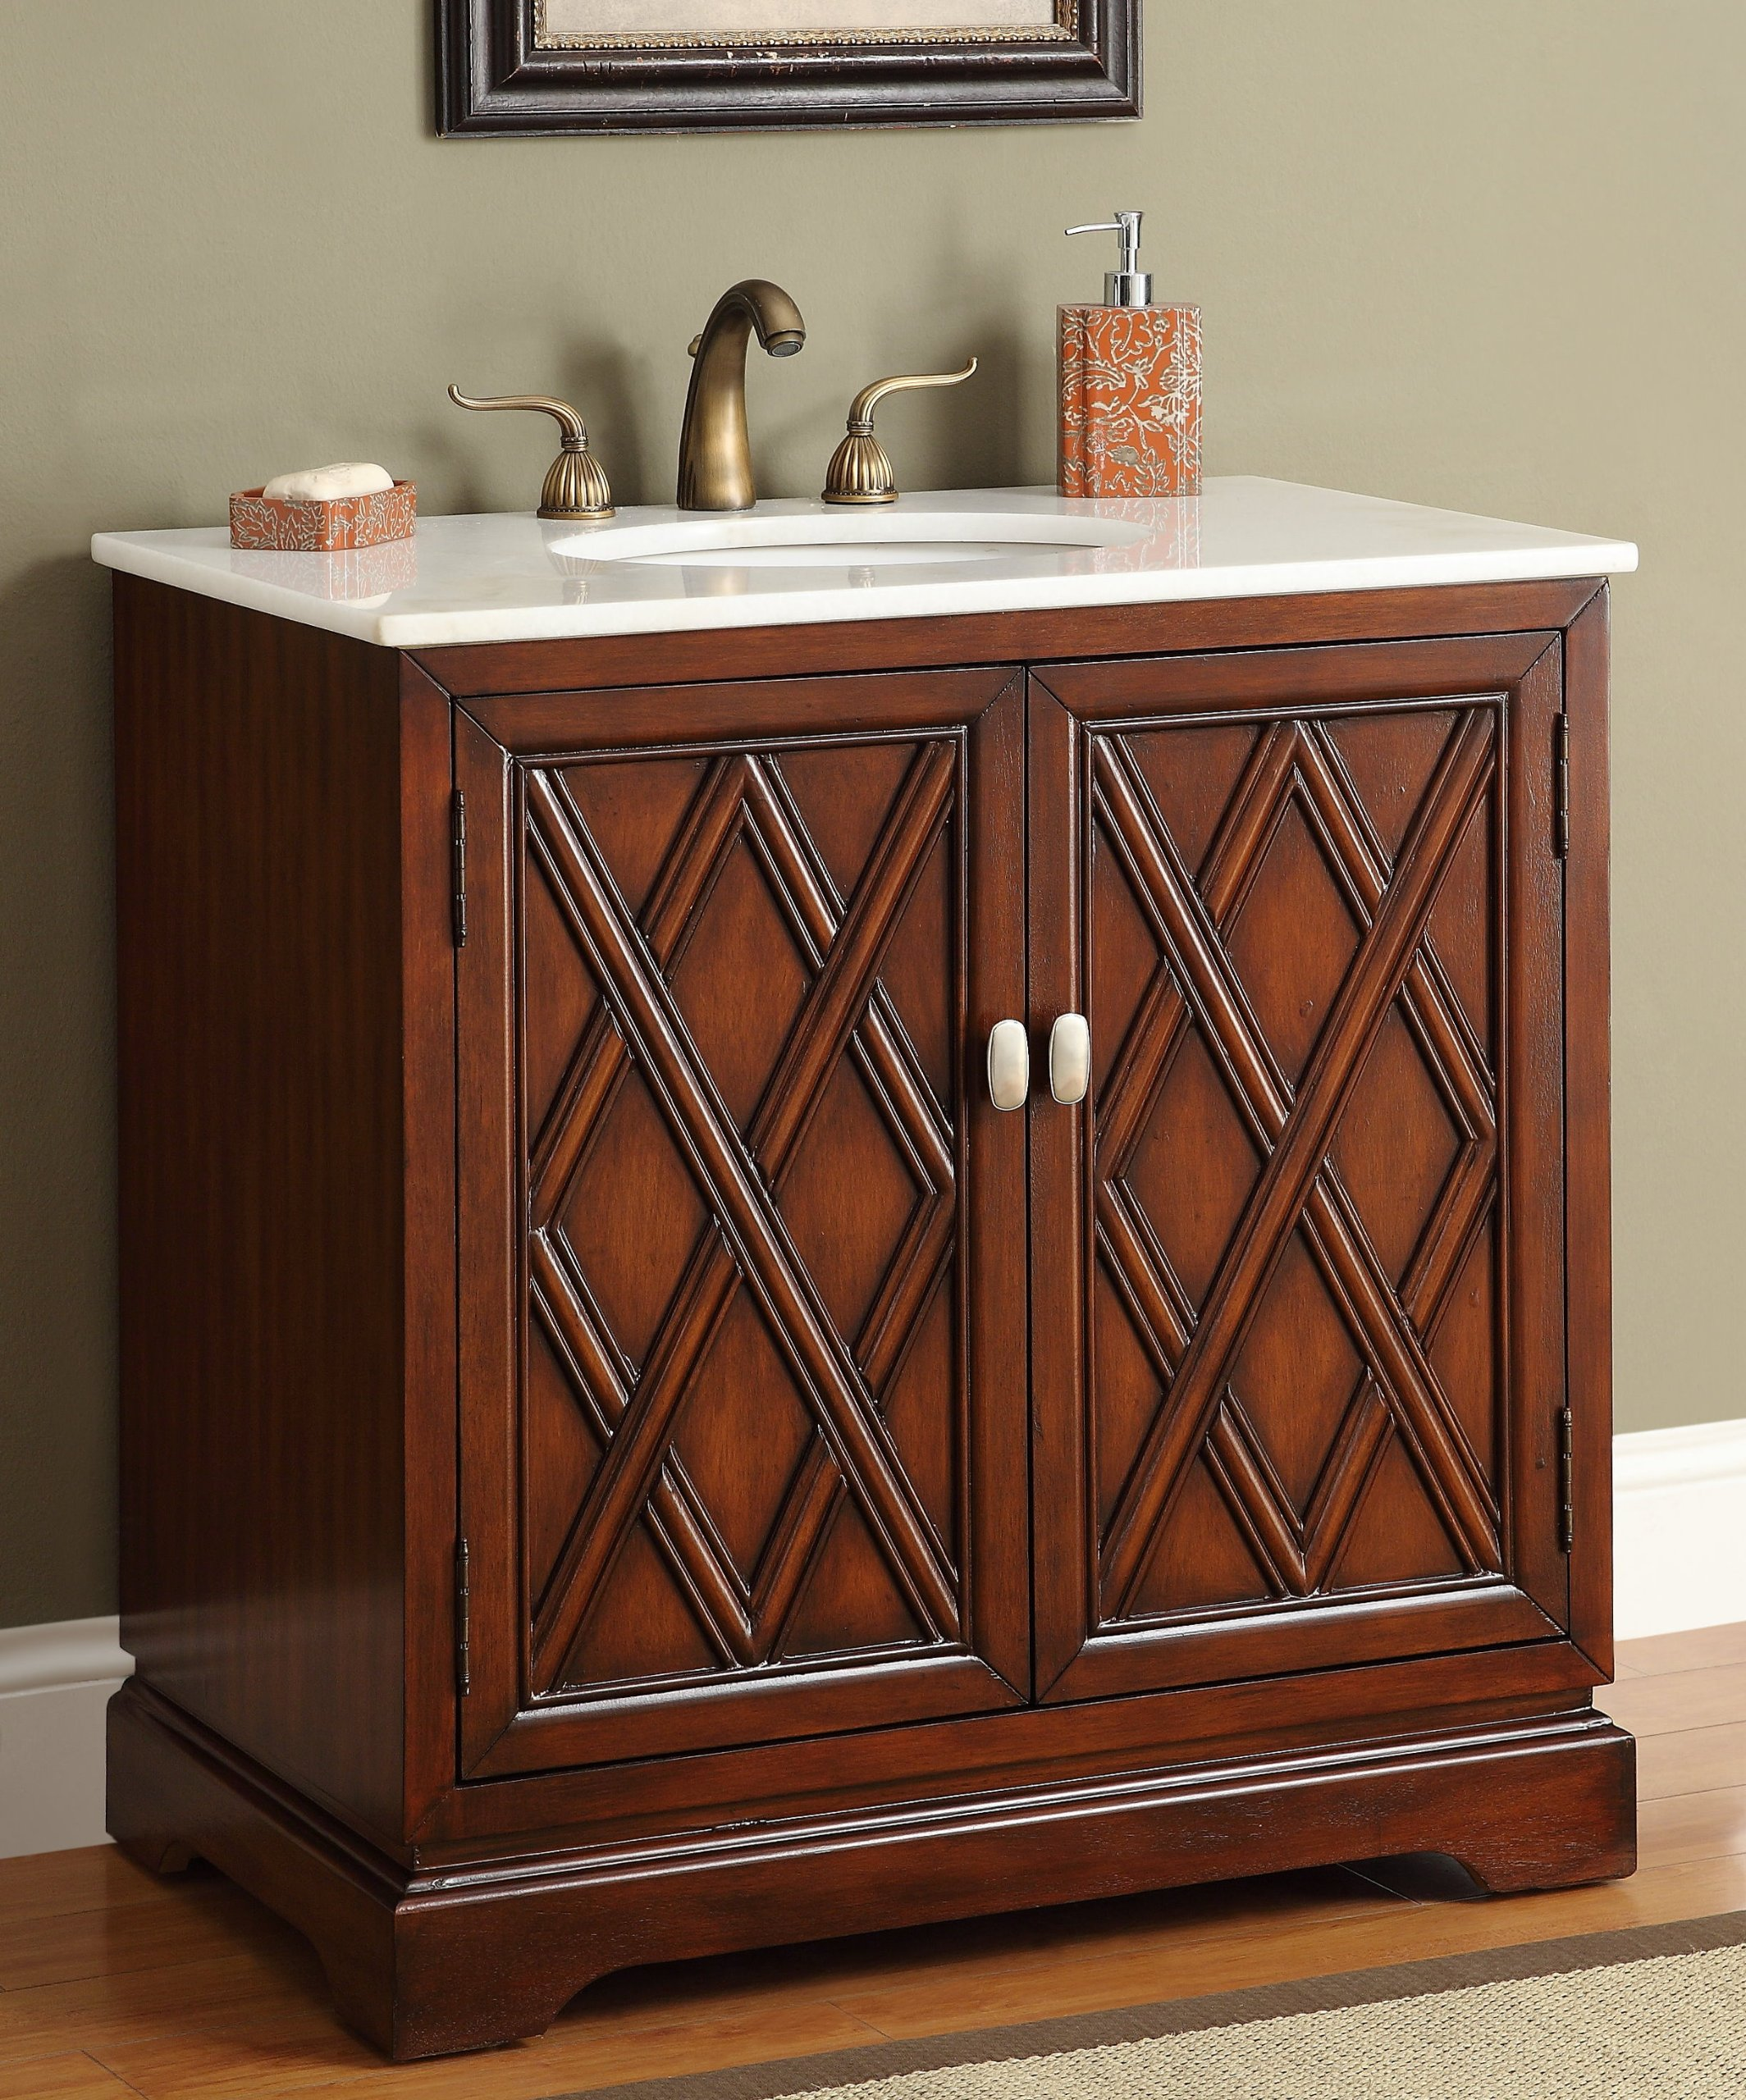 "34"" Refine Woodwork Aengus Bathroom Sink Vanity Model – CF12068"